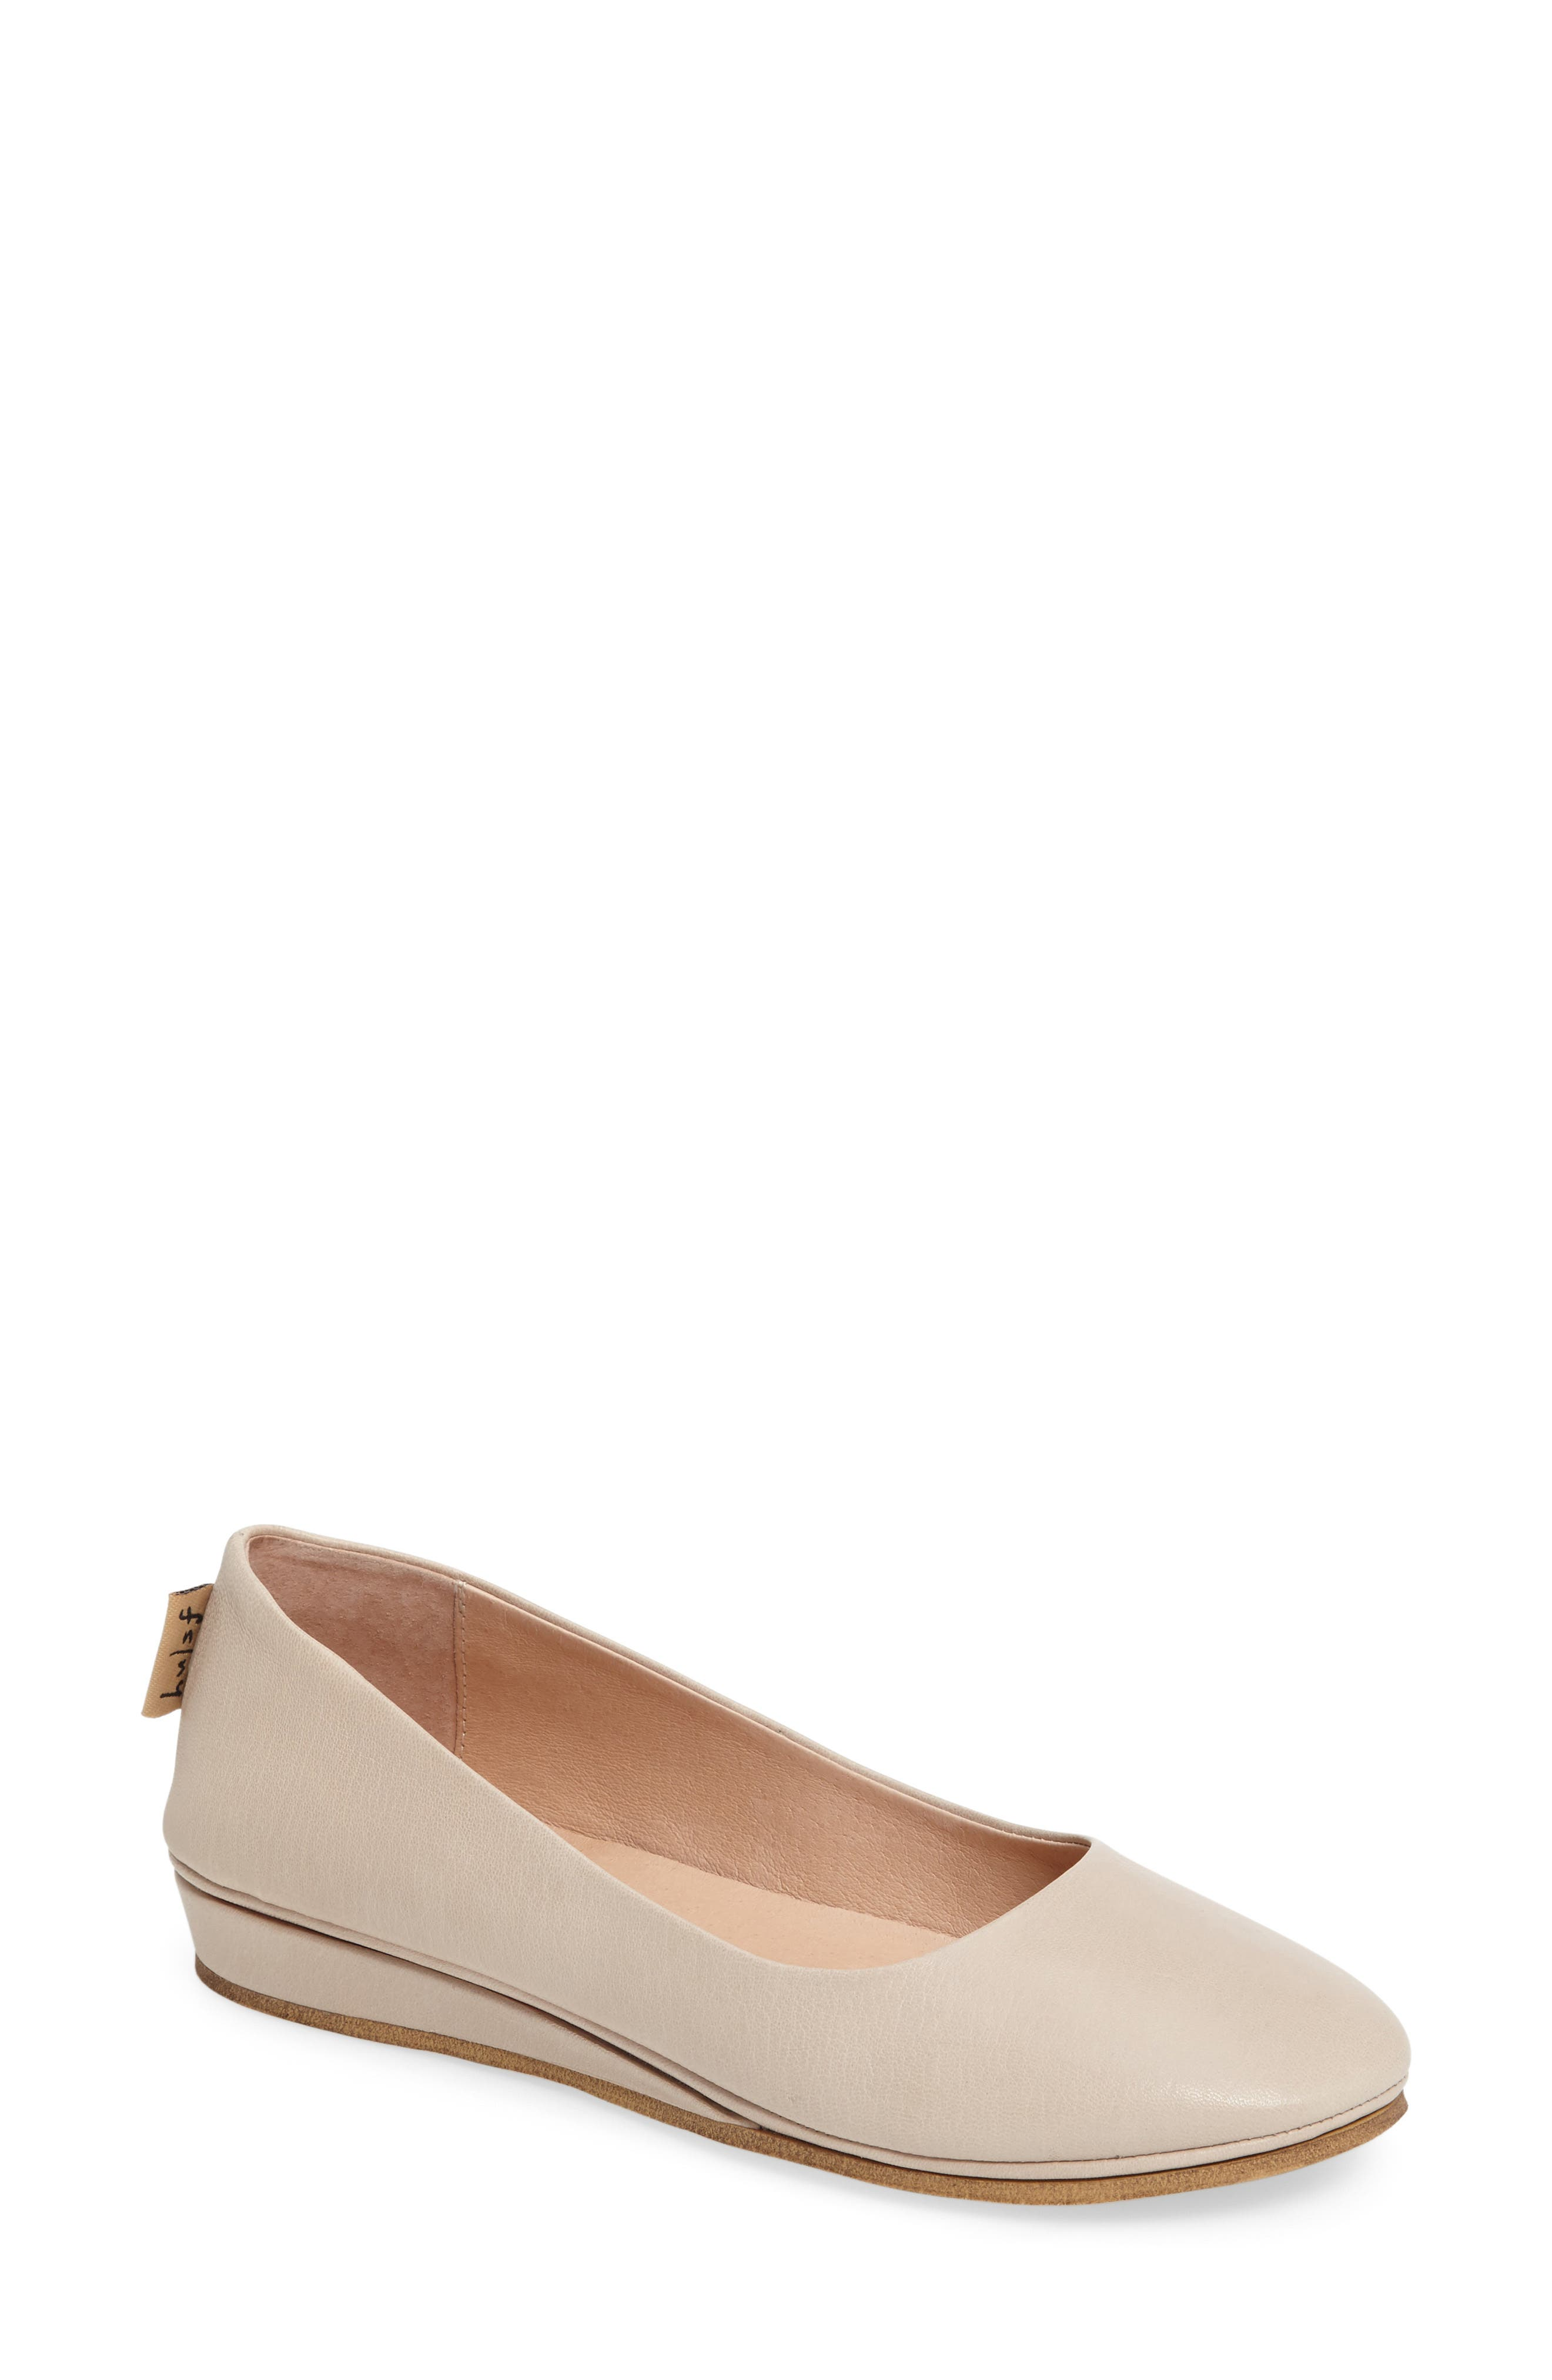 Main Image - French Sole 'Zeppa' Wedge